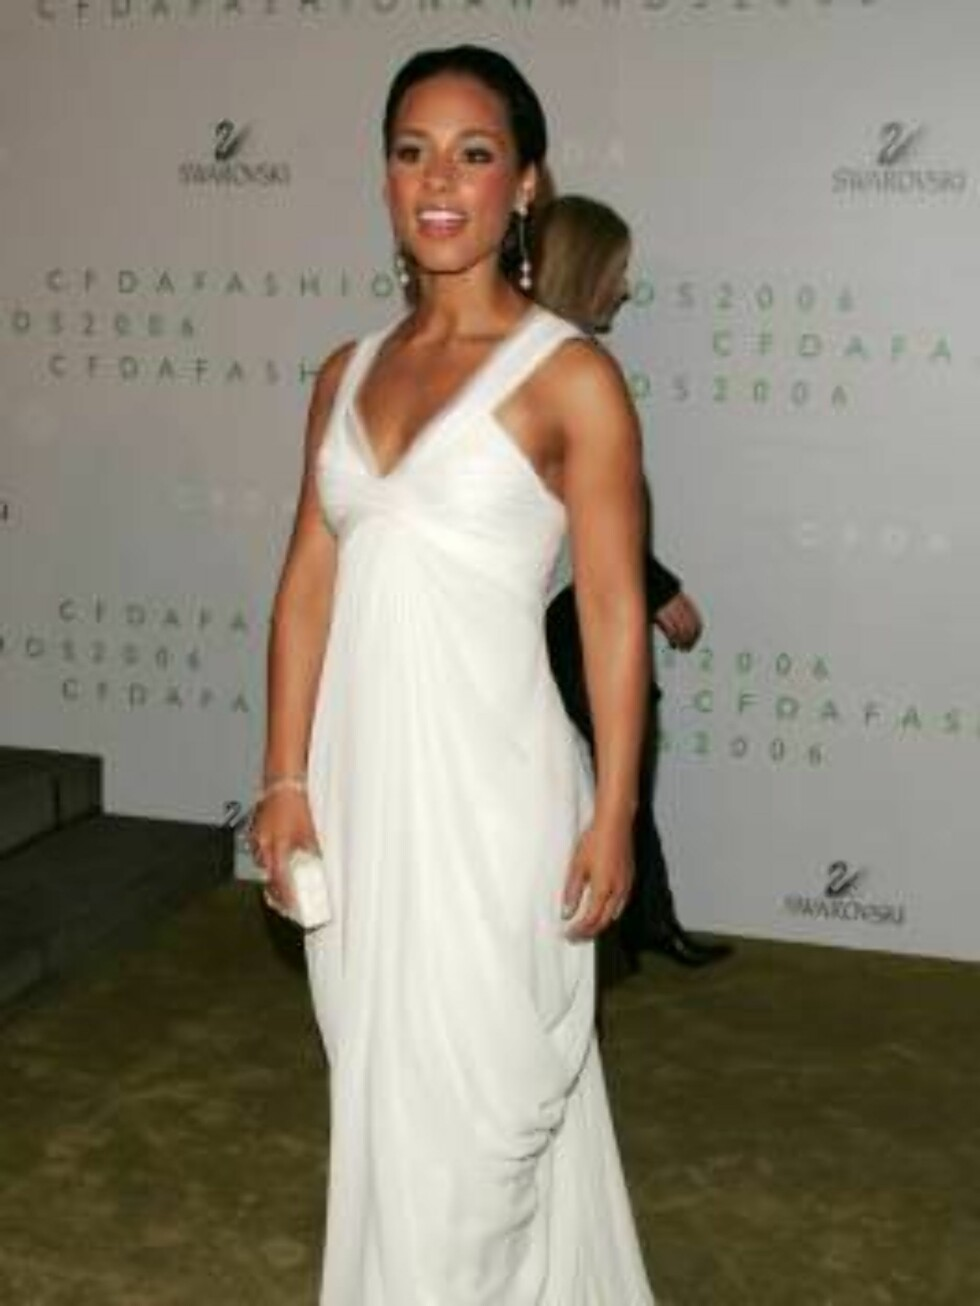 NEW YORK - JUNE 5:  Singer Alicia Keys attends the 2006 CFDA Awards at the New York Public Library on June 5, 2006 in New York City.  (Photo by Peter Kramer/Getty Images) *** Local Caption *** Alicia Keys   * SPECIAL INSTRUCTIONS:  * *OBJECT NAME: 7112472 Foto: All Over Press